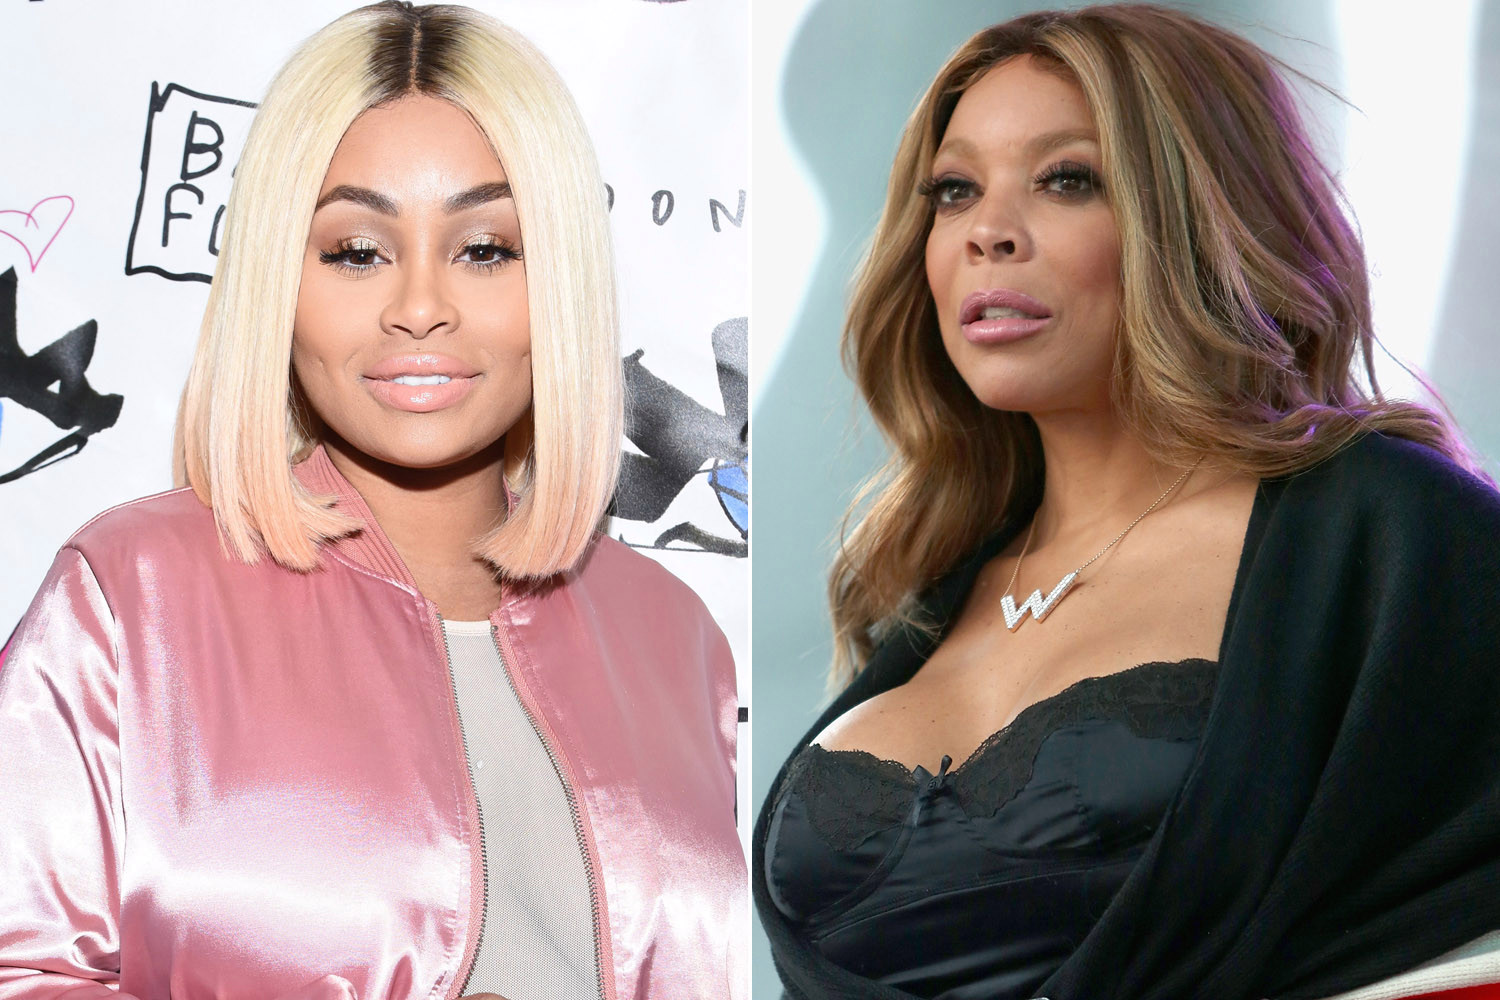 Blac Chyna Talks About Her Relationship with Tyga and Rob